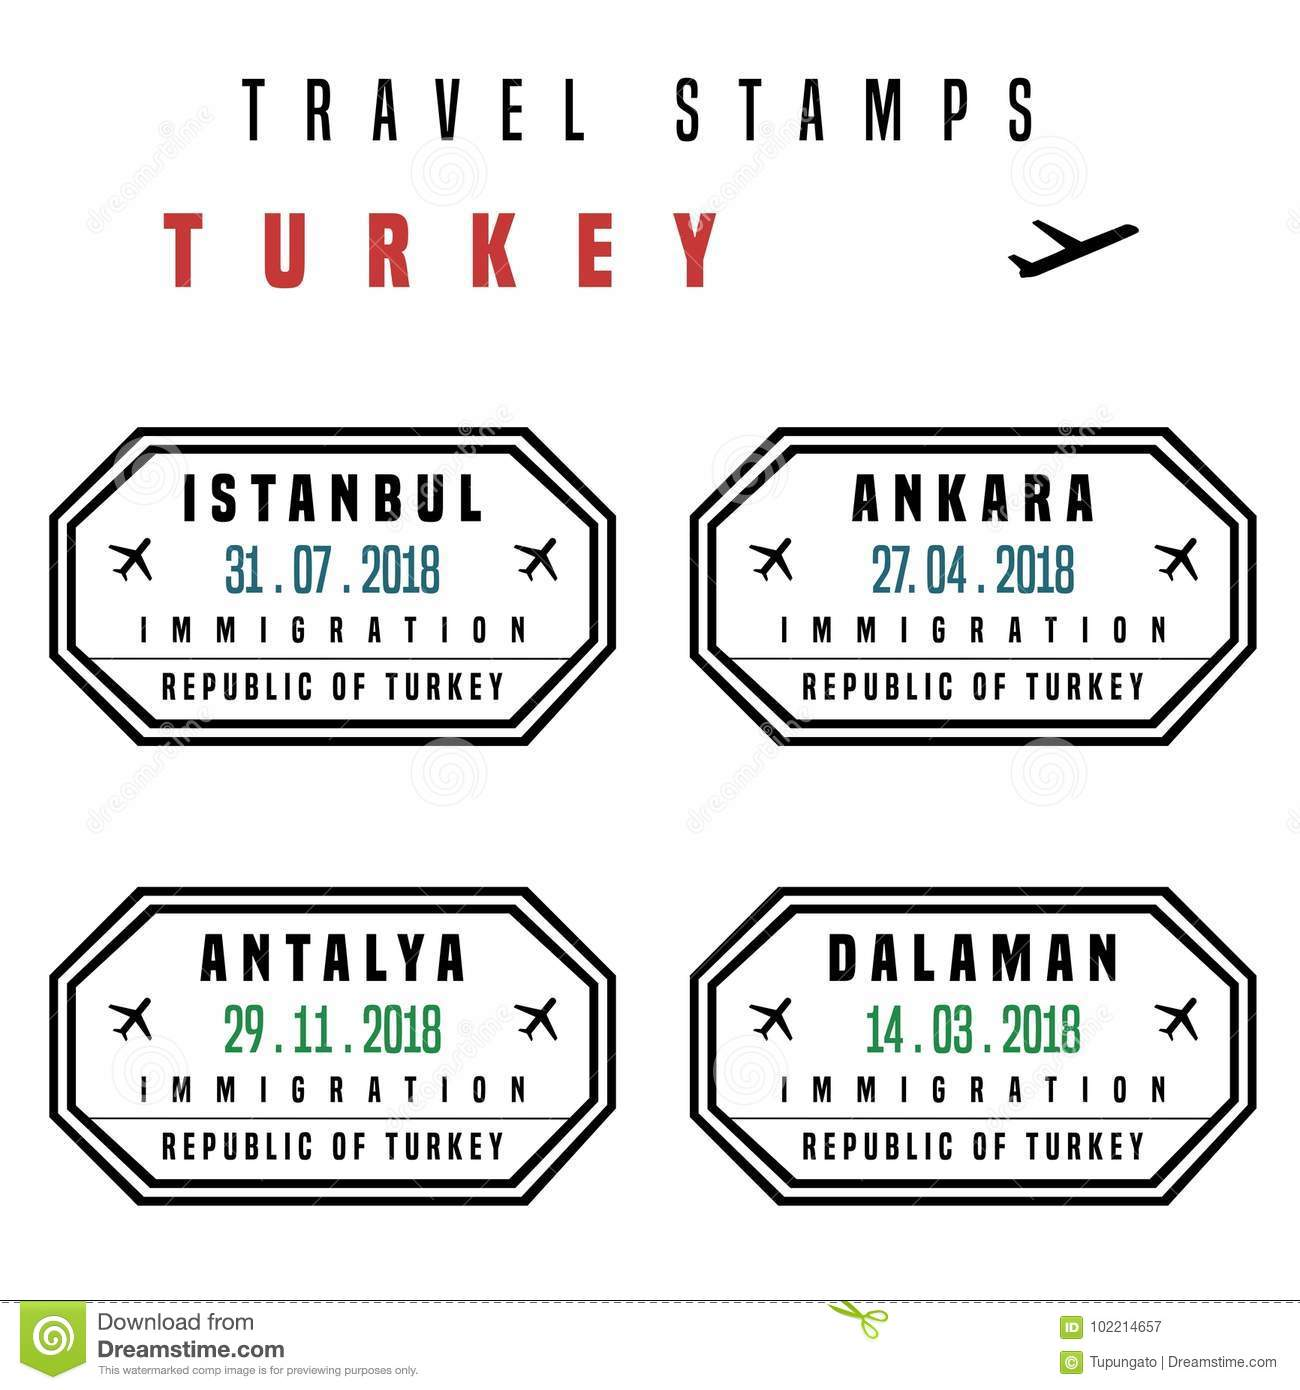 Turkey Visa Stamps Stock Vector Illustration Of Document 102214657